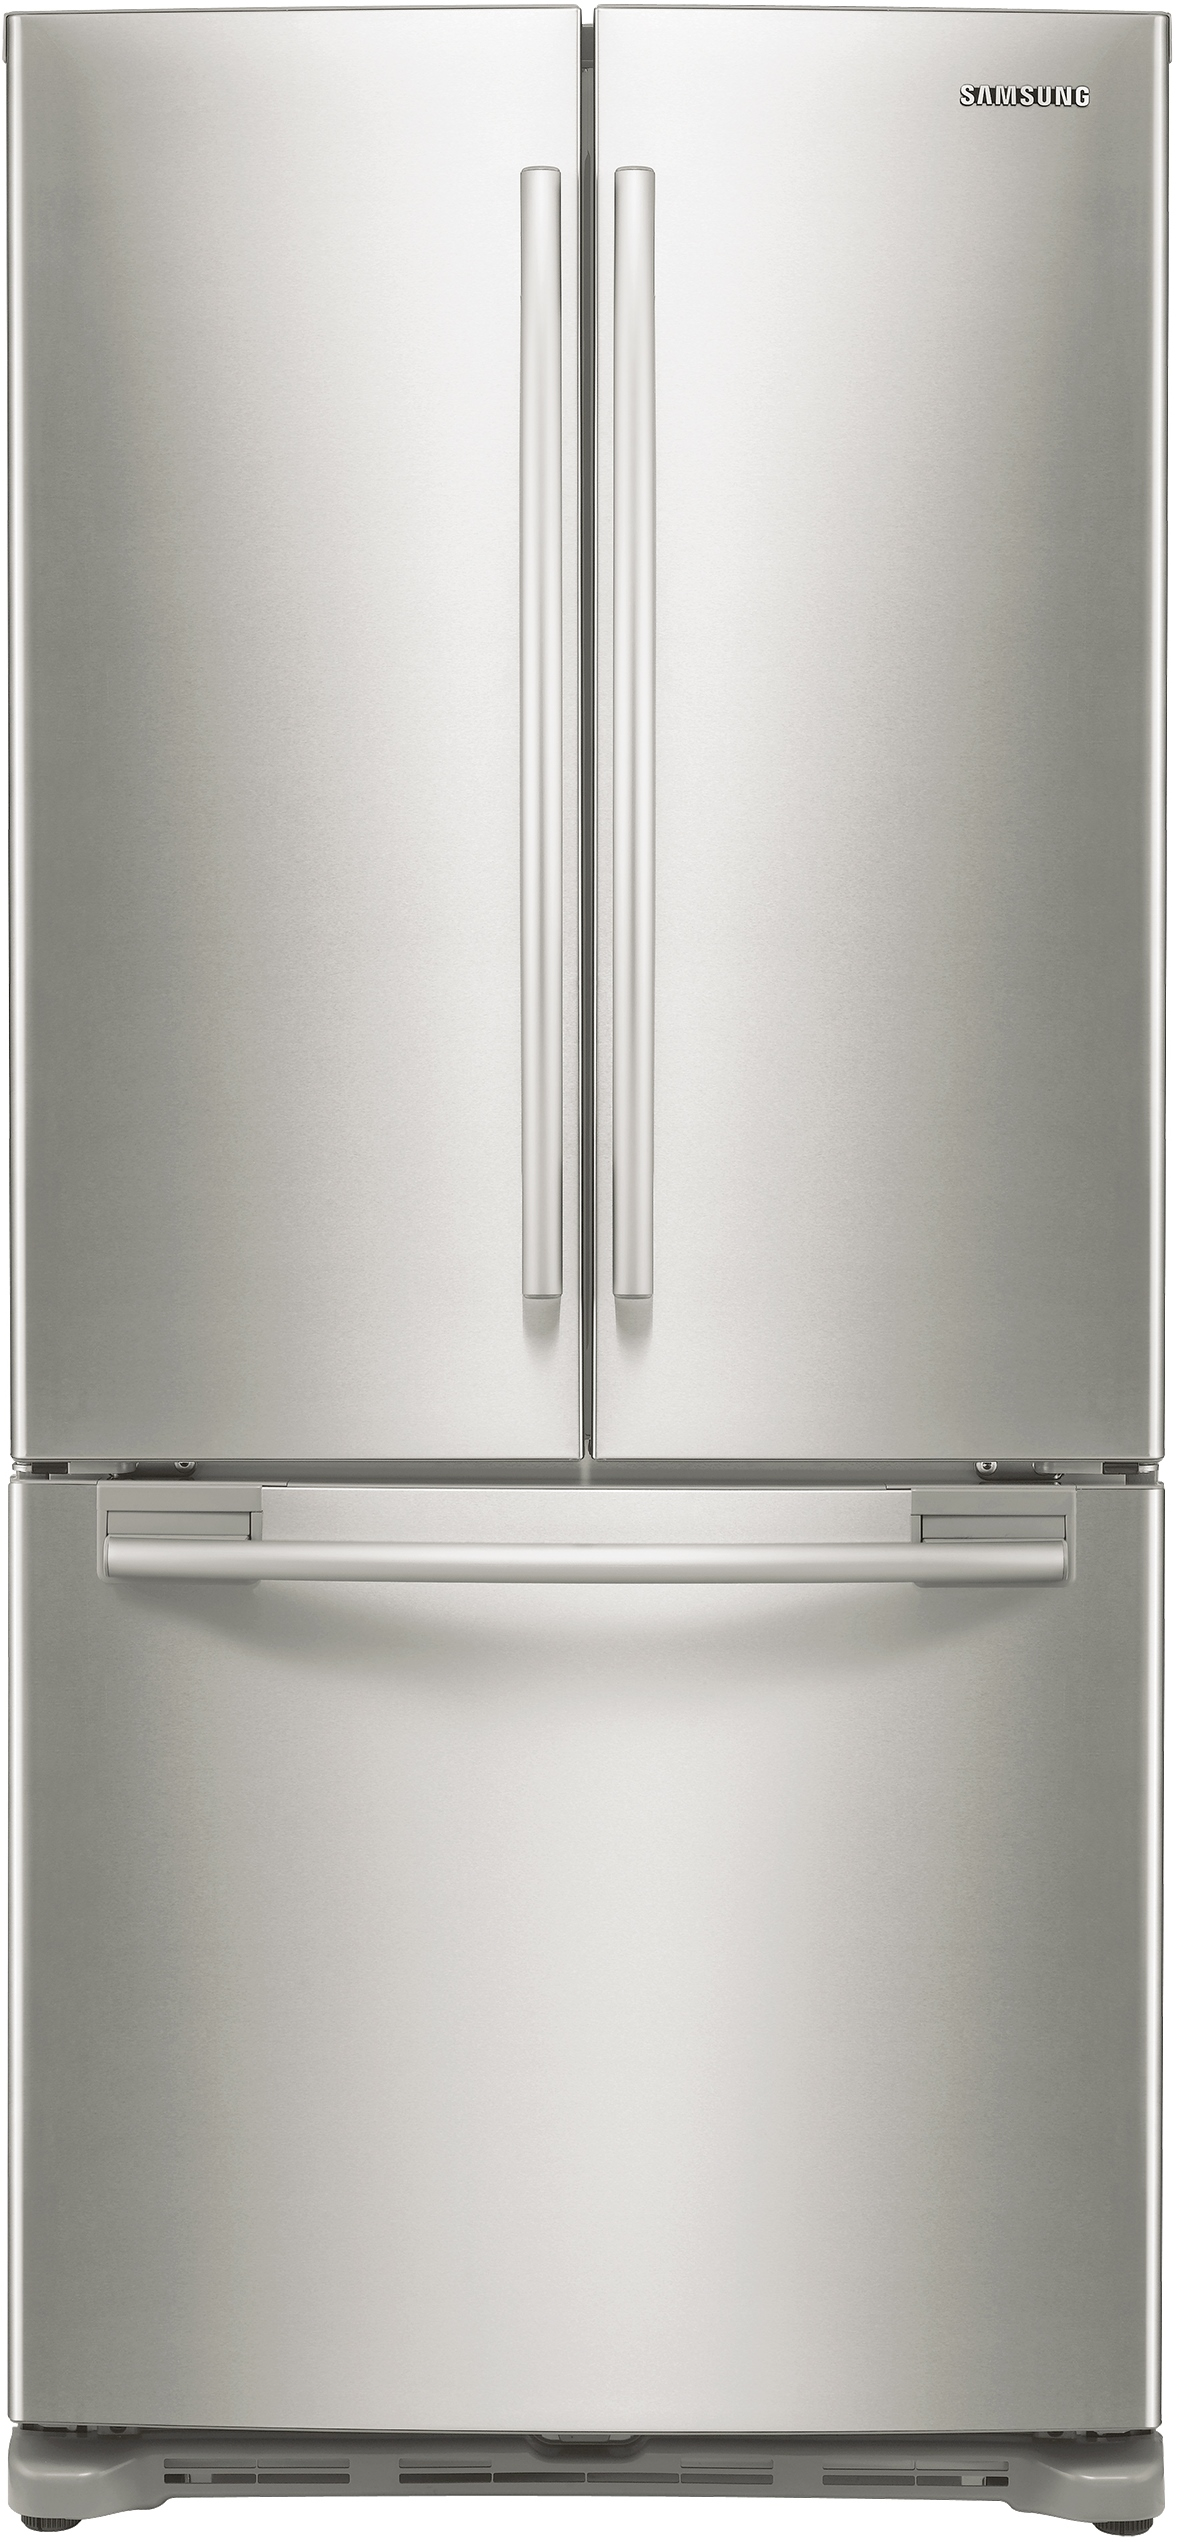 RF18HFENBSR-18-cu-ft-Capacity-Counter-Depth-French-Door-Refrigerator-Stainless-Steel